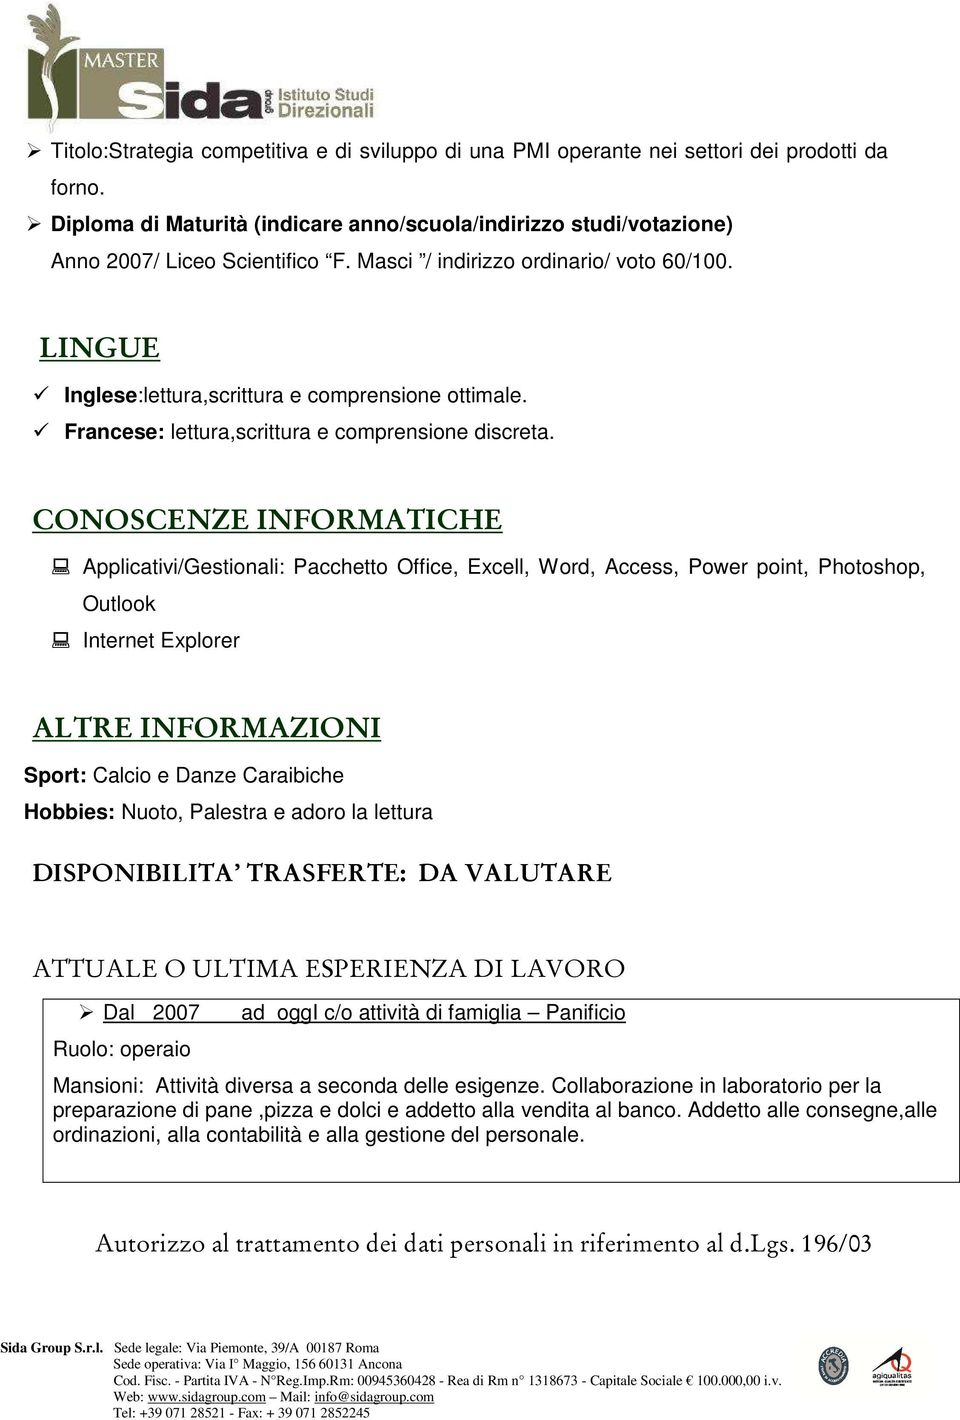 CONOSCENZE INFORMATICHE Applicativi/Gestionali: Pacchetto Office, Excell, Word, Access, Power point, Photoshop, Outlook Internet Explorer ALTRE INFORMAZIONI Sport: Calcio e Danze Caraibiche Hobbies: